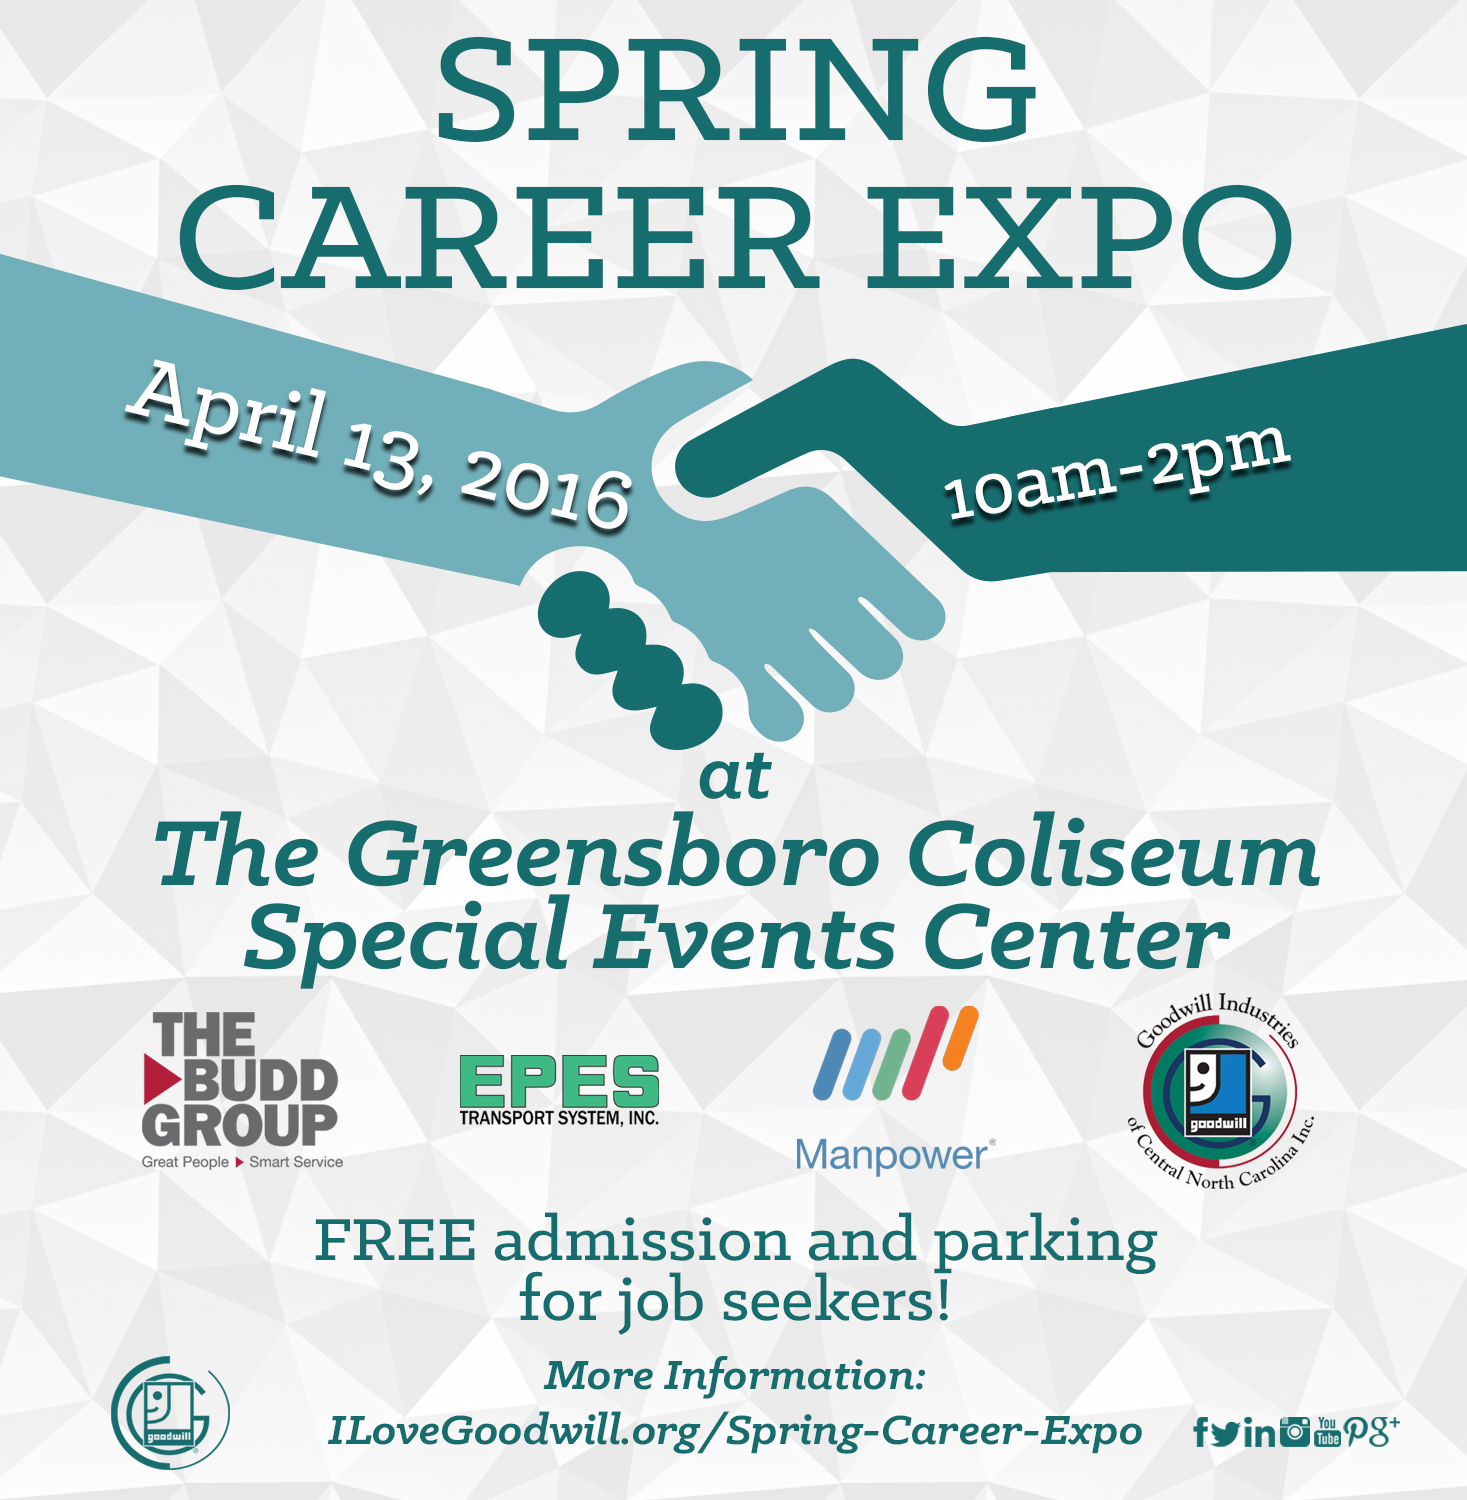 Land A Job At Triad Goodwill's Spring Career Expo